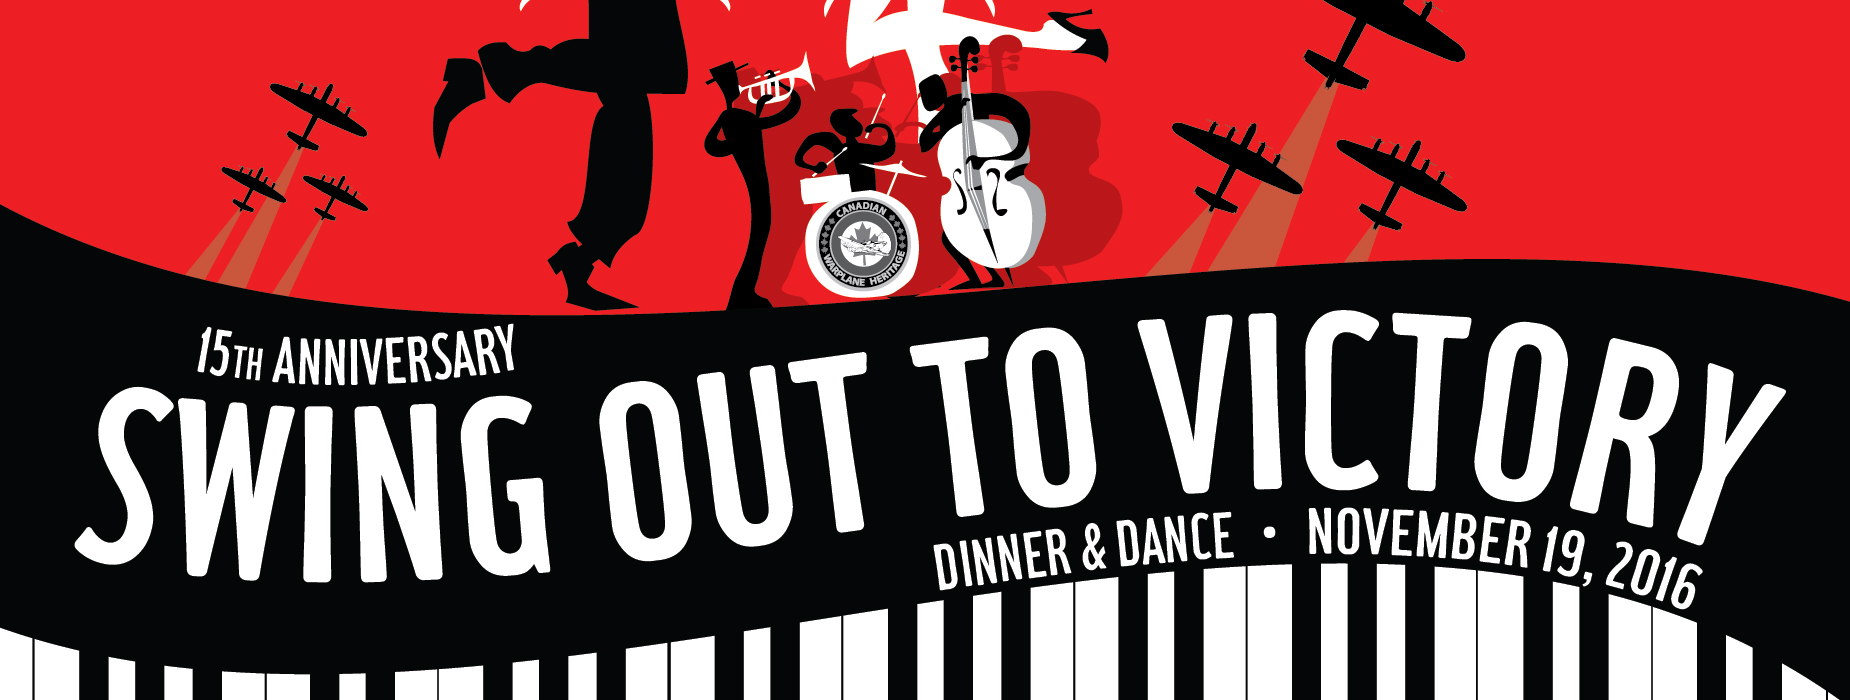 Poster for - Swing Out to Victory Dinner & Dance